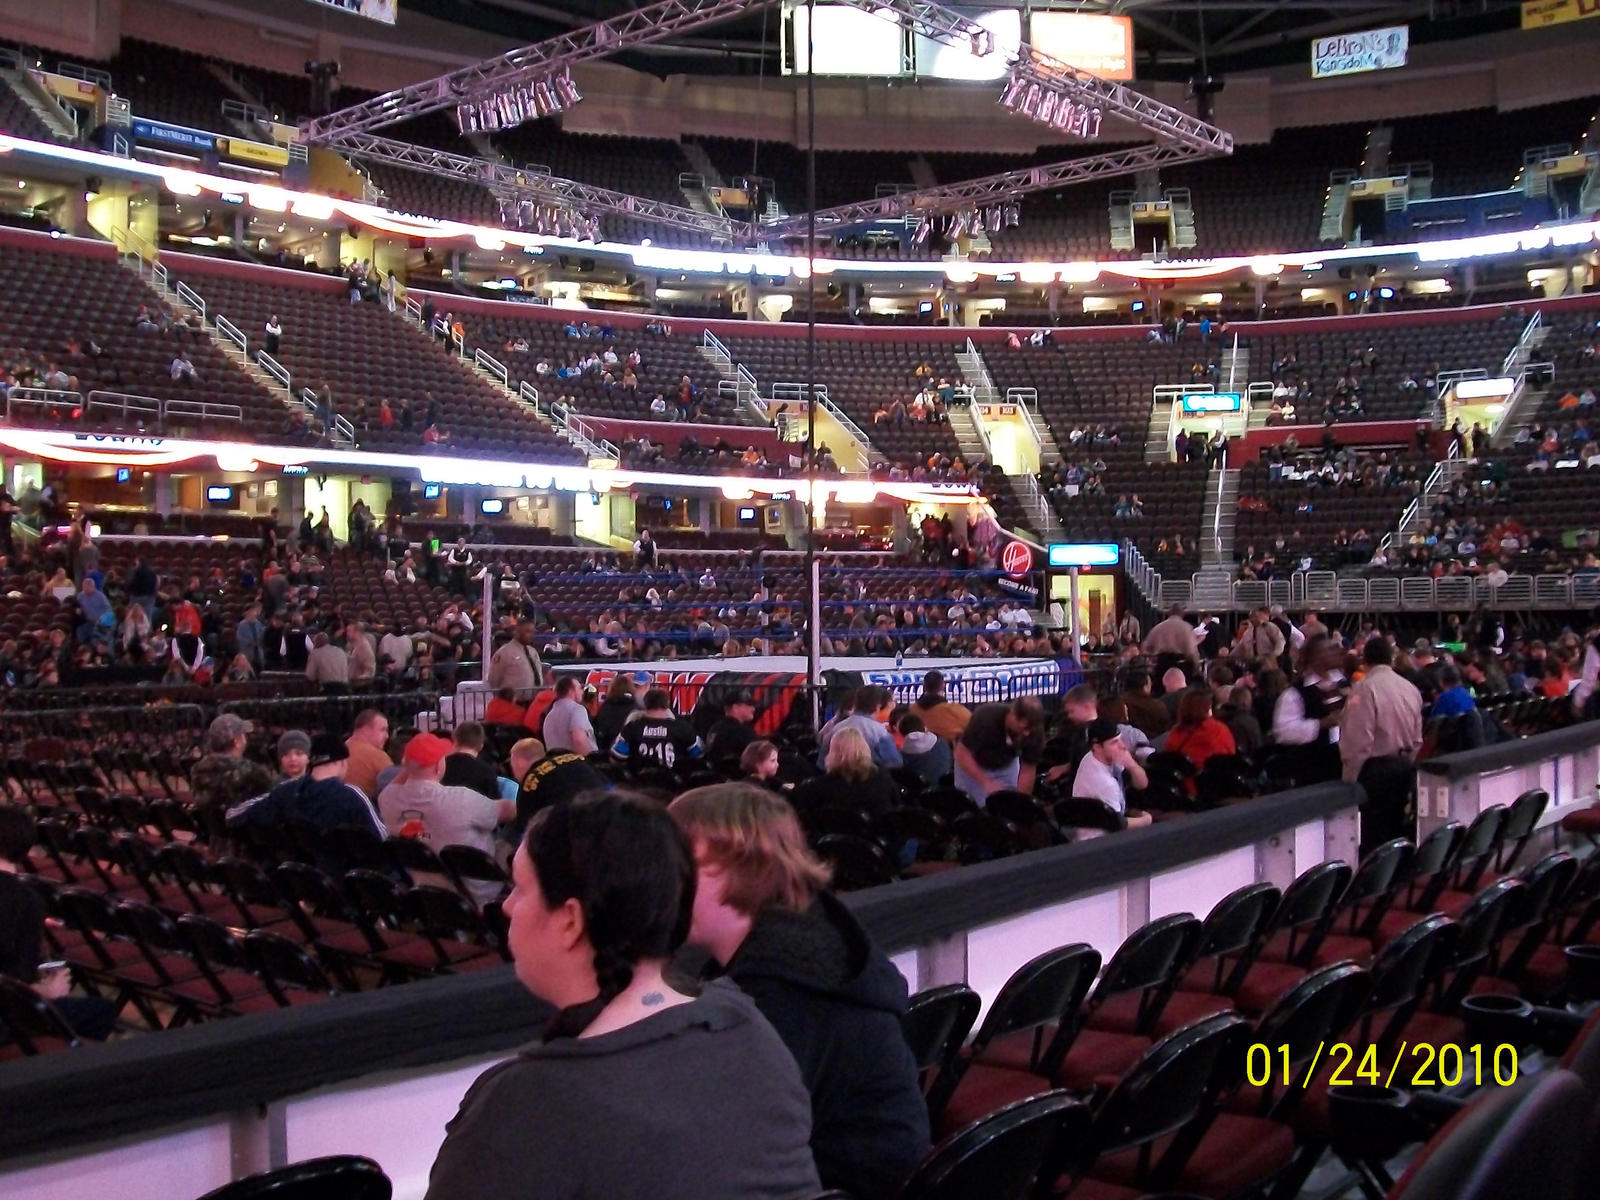 Seating charts quicken loans arena official website - Quicken Loans Arena Seating Wwe